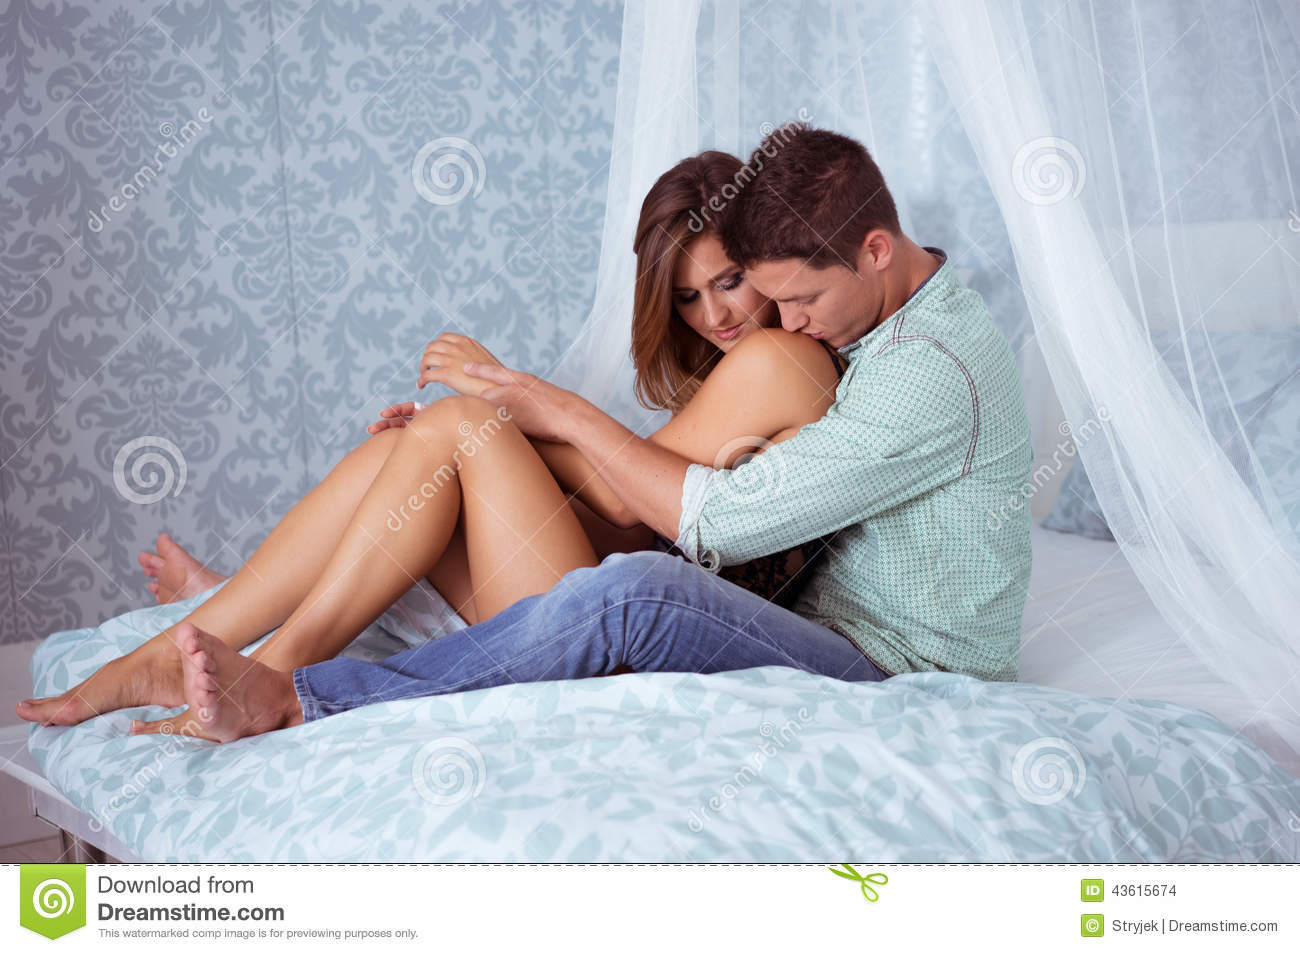 Beautyful couple in romantic mood in their bedroom